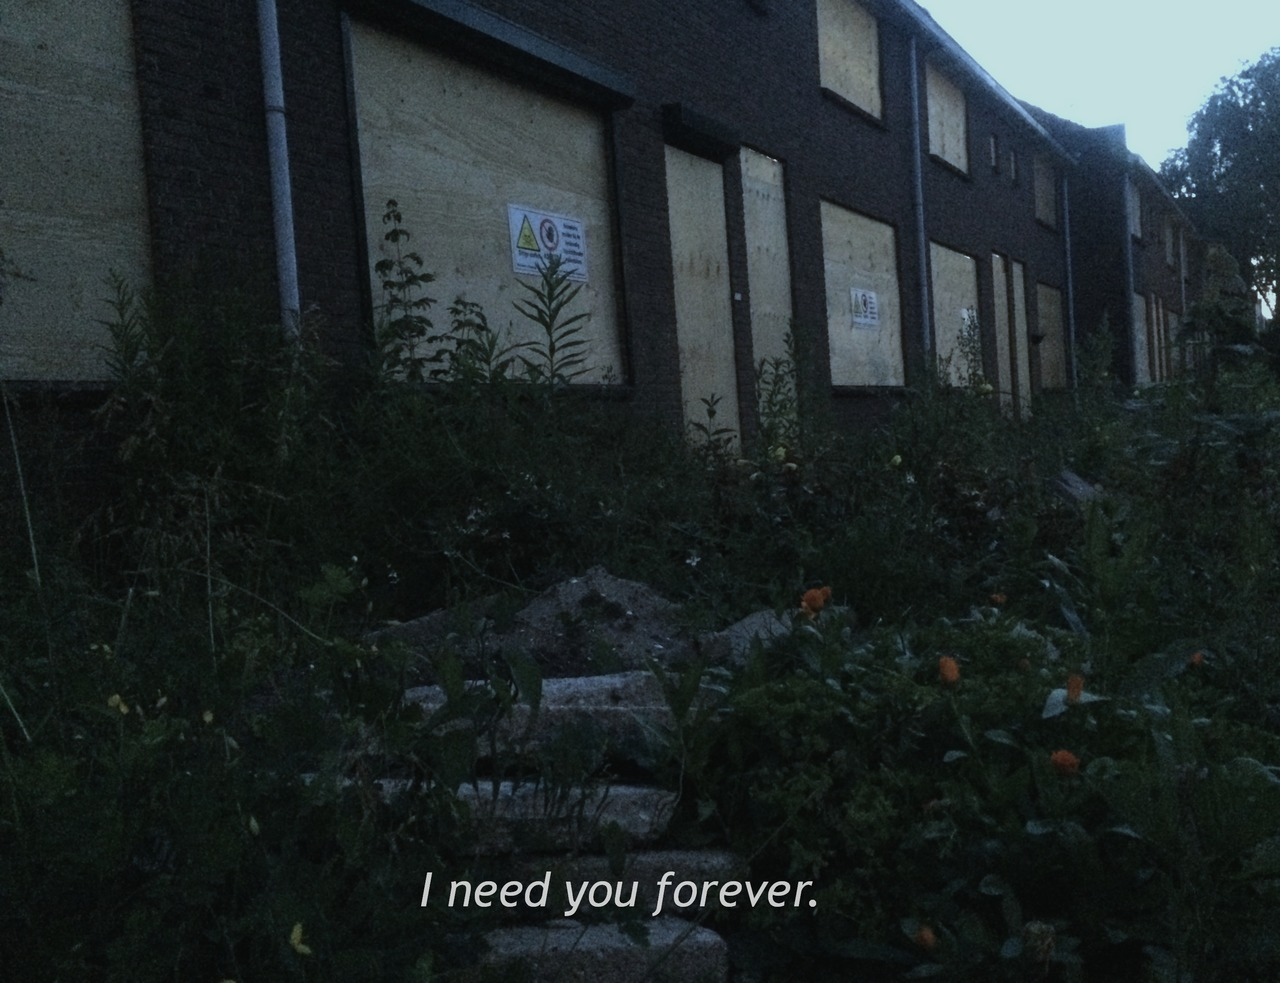 I Need You Forever Shared By Addicted On We Heart It